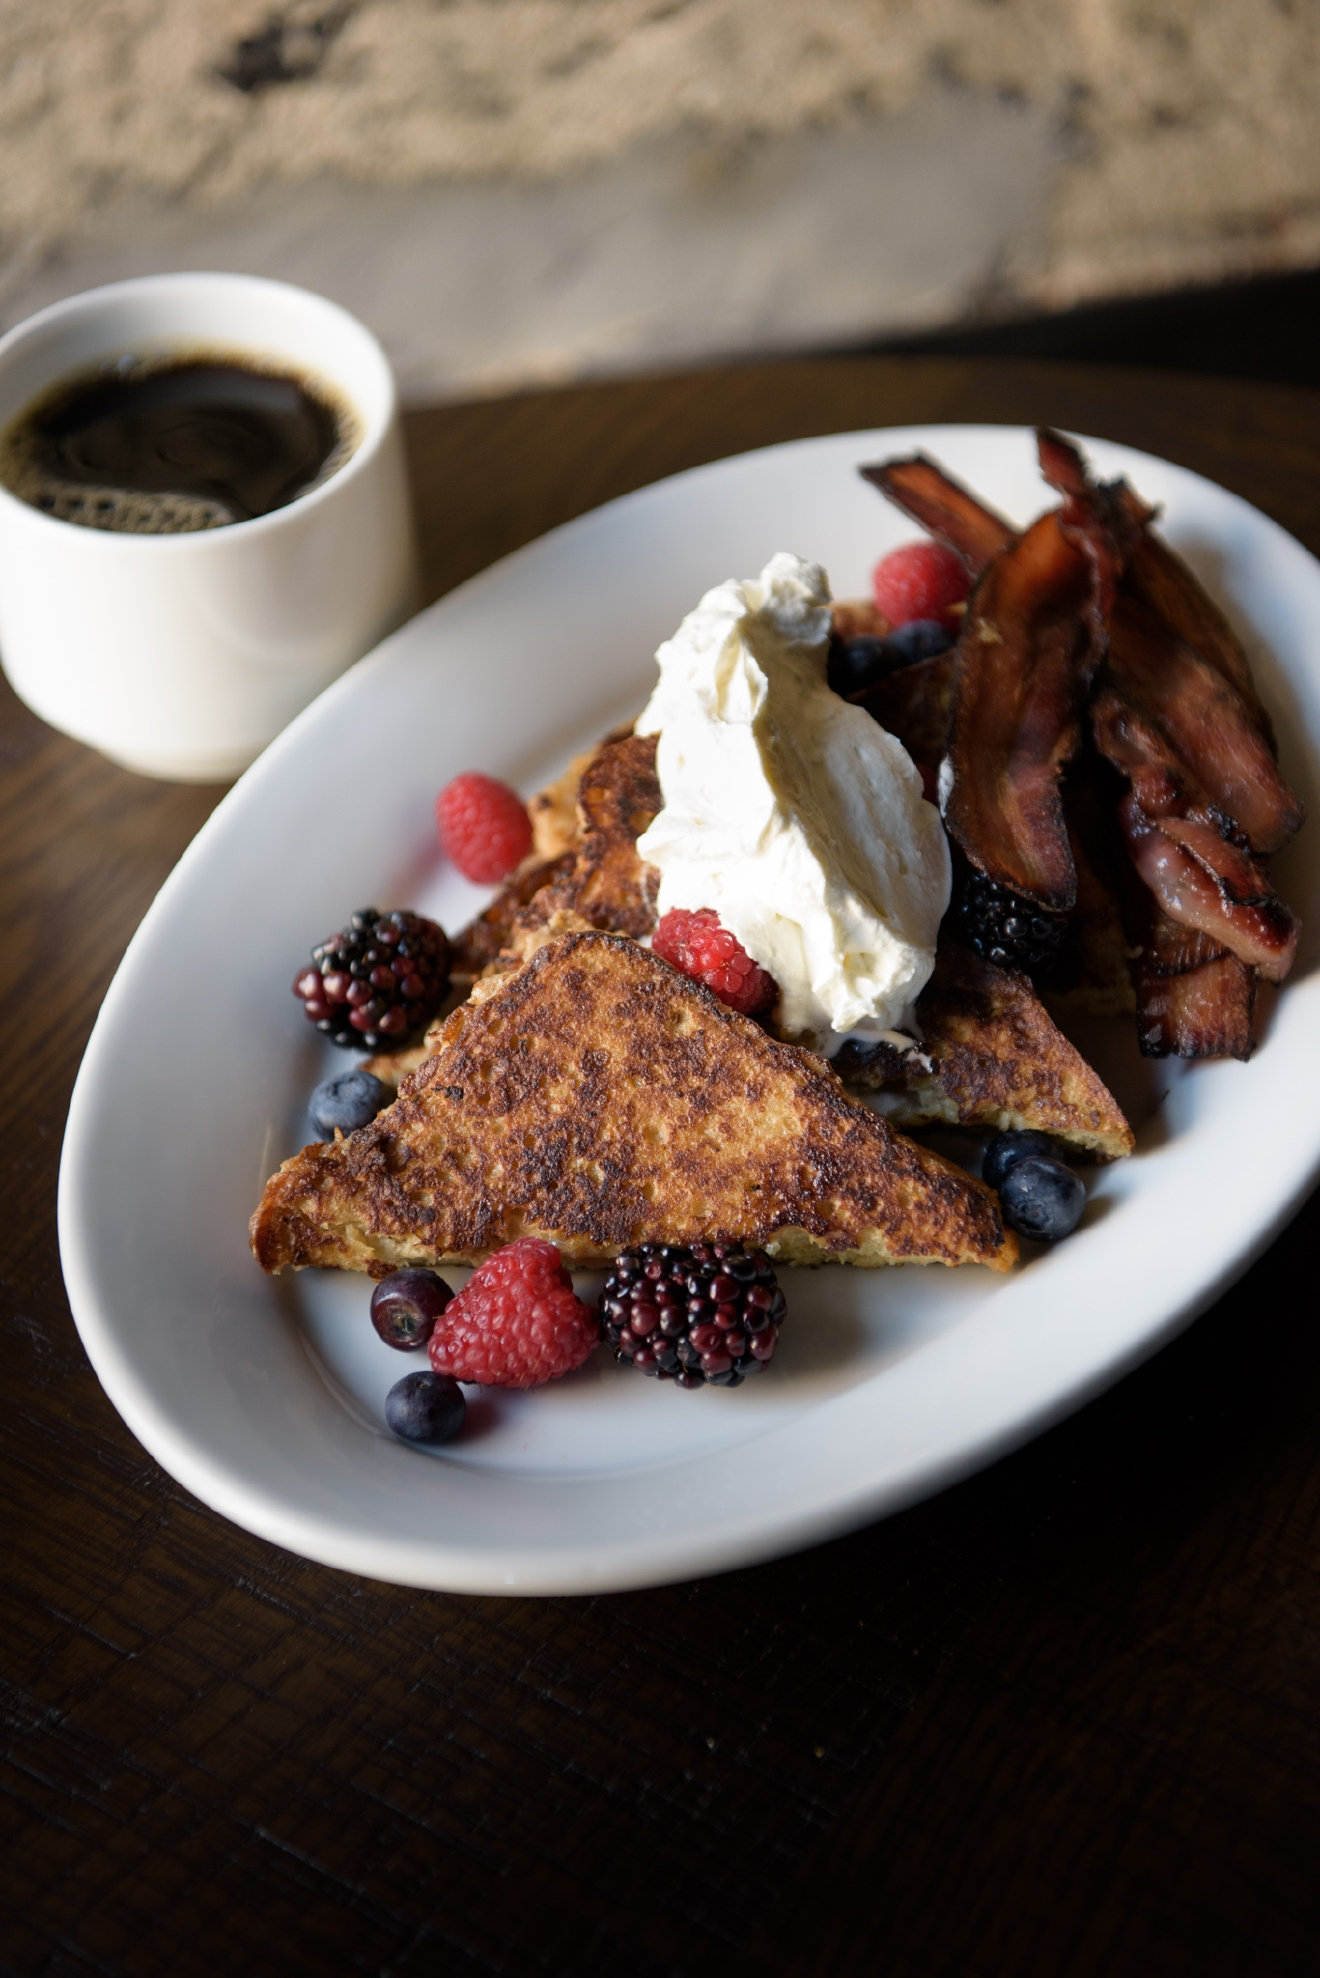 You cannot go wrong with the Challah French toast coronated with seasonal berries, Chantilly cream and pork belly bacon accented with hickory smoke and maple sugar.(Image: Jeff Martin)